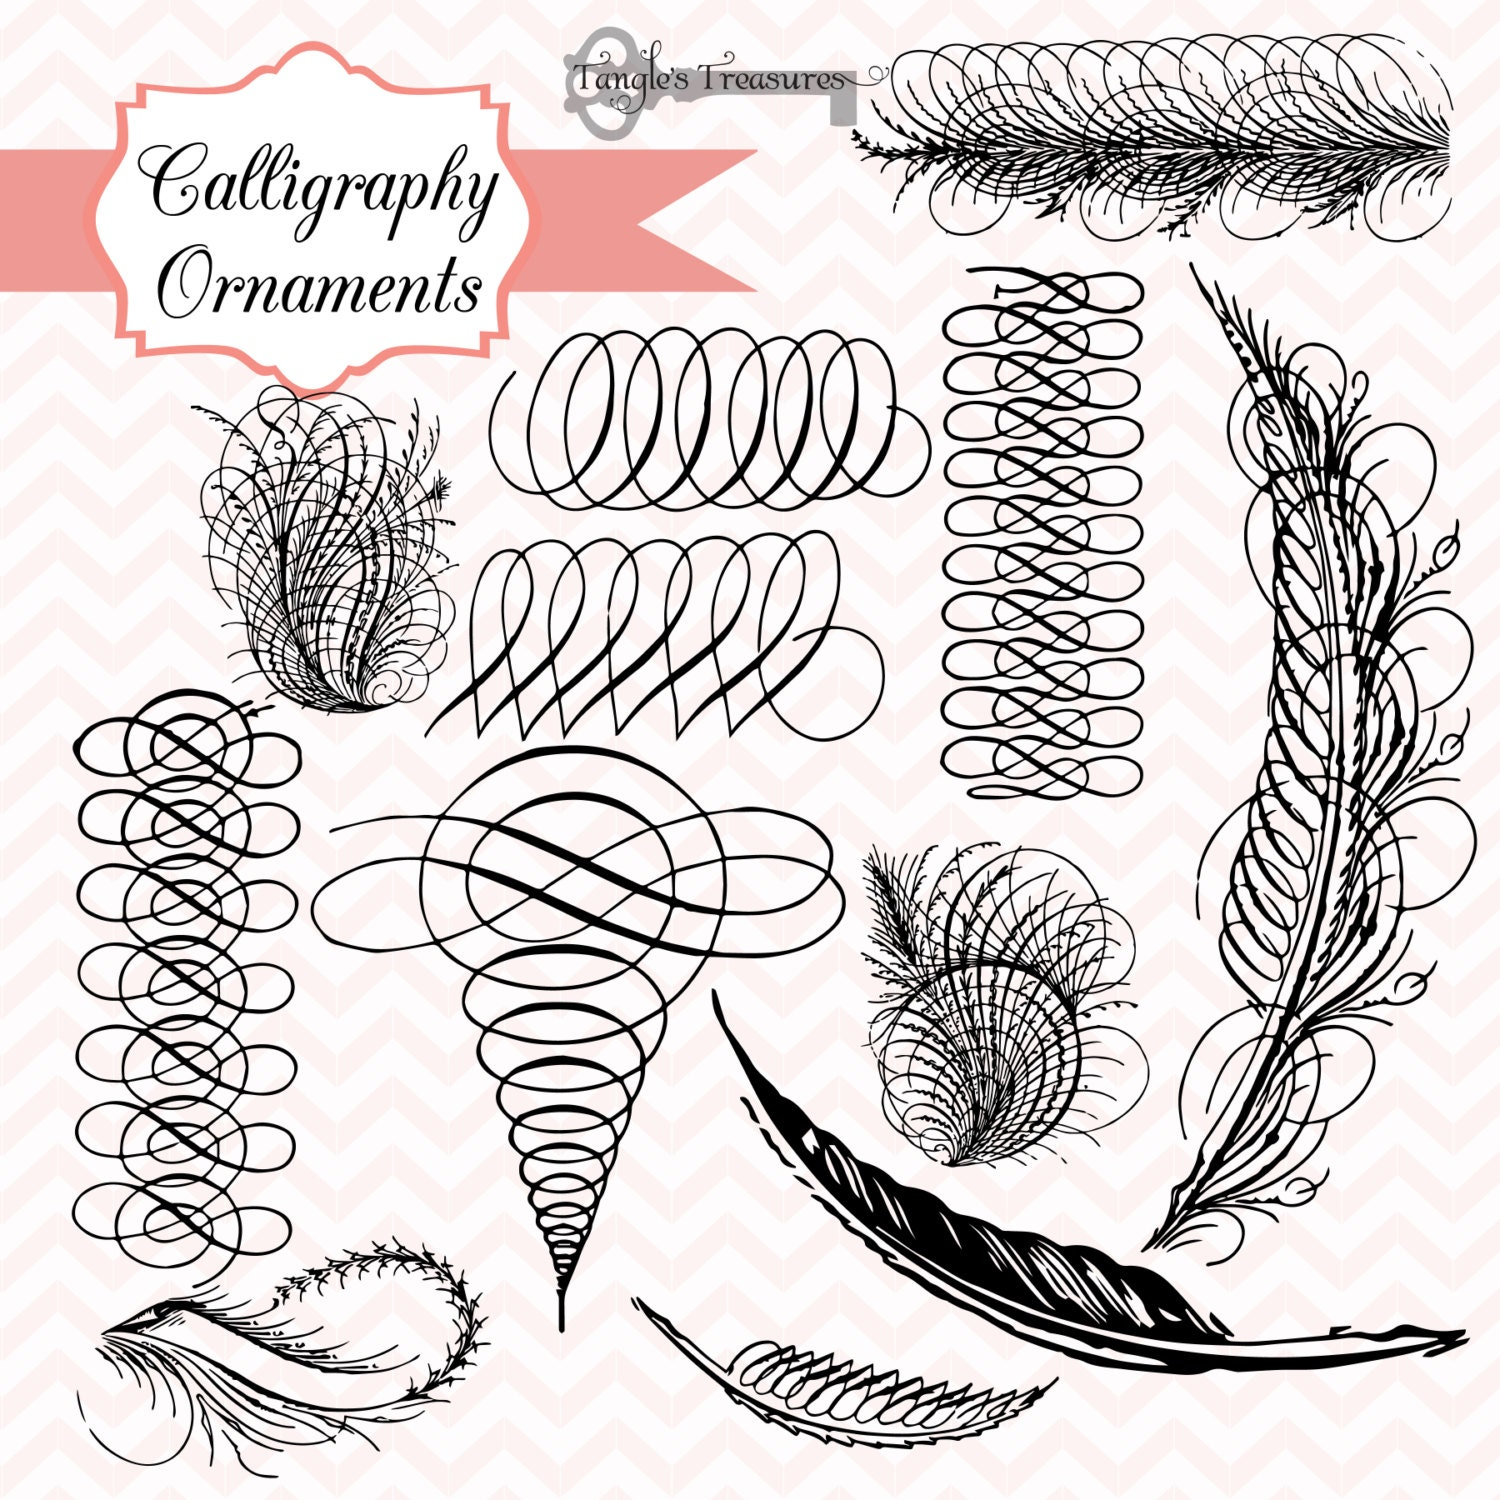 Vintage calligraphy ornaments digital clip art by